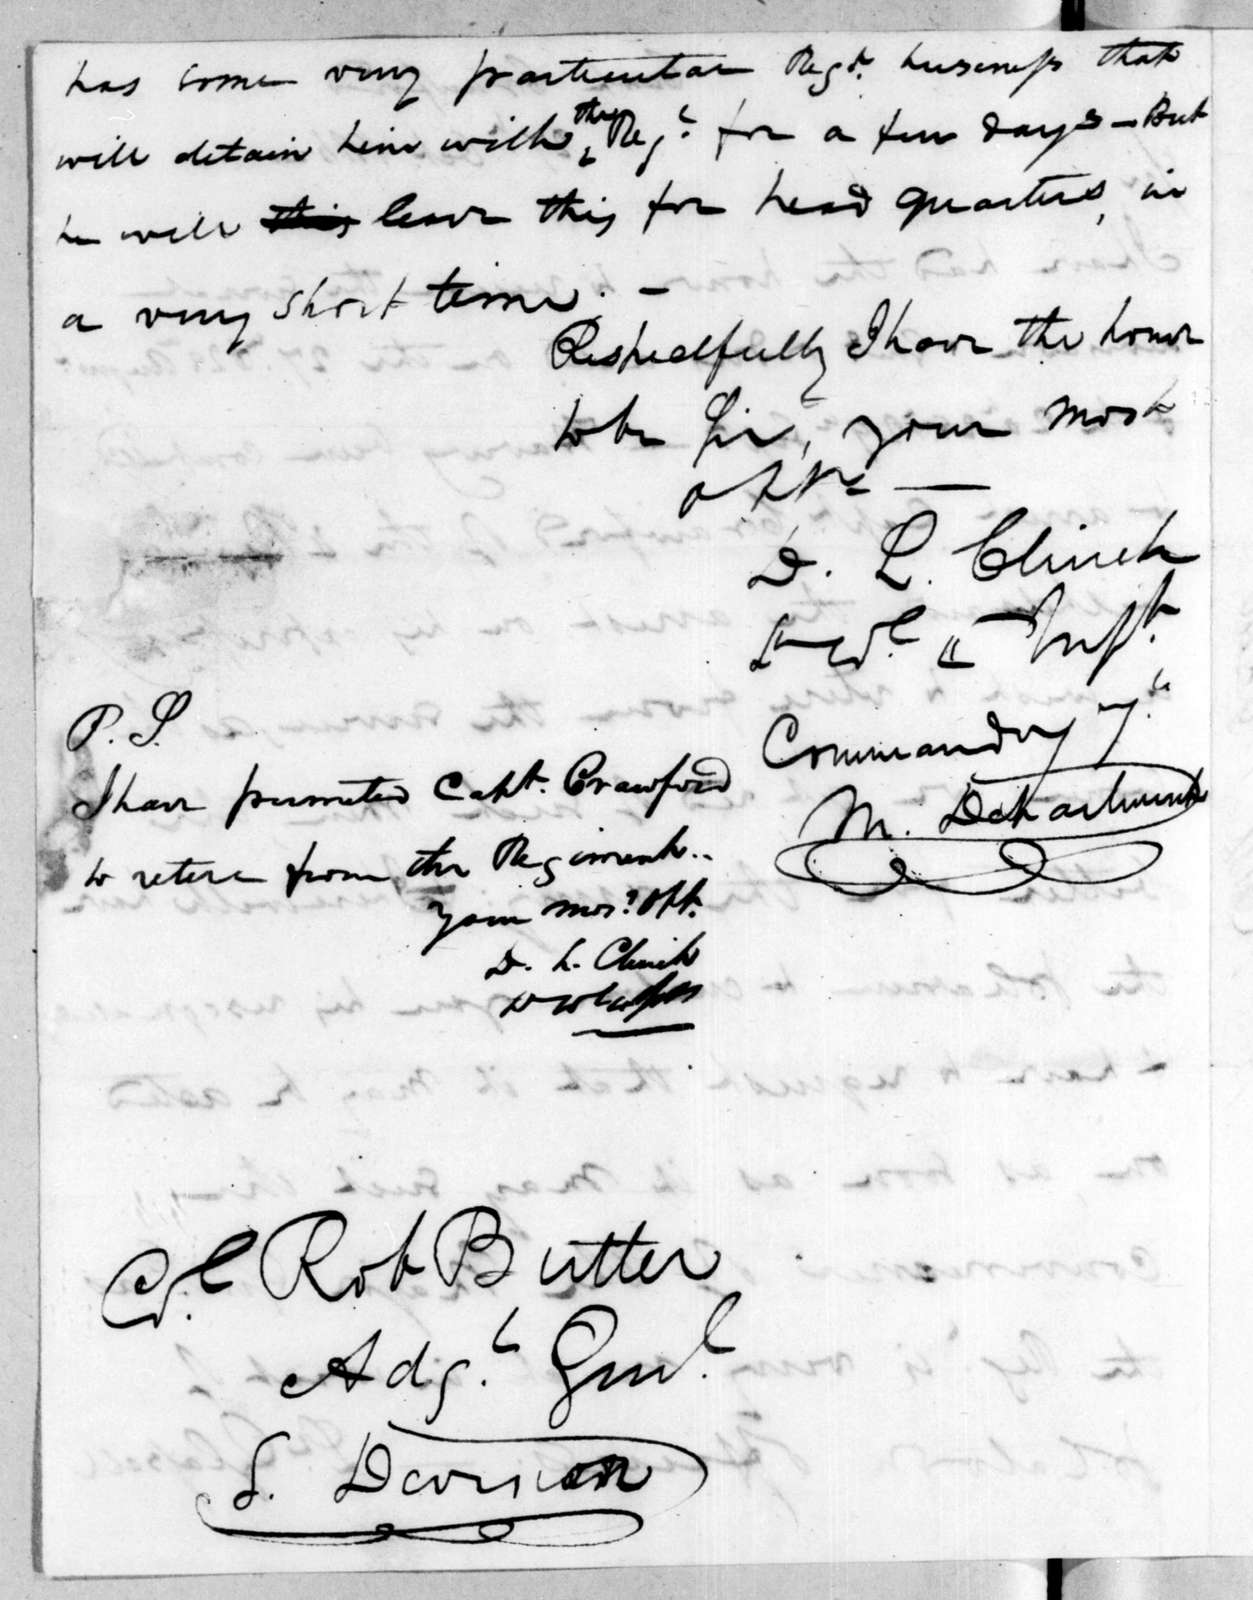 Duncan Lamont Clinch to Robert Butler, October 27, 1816